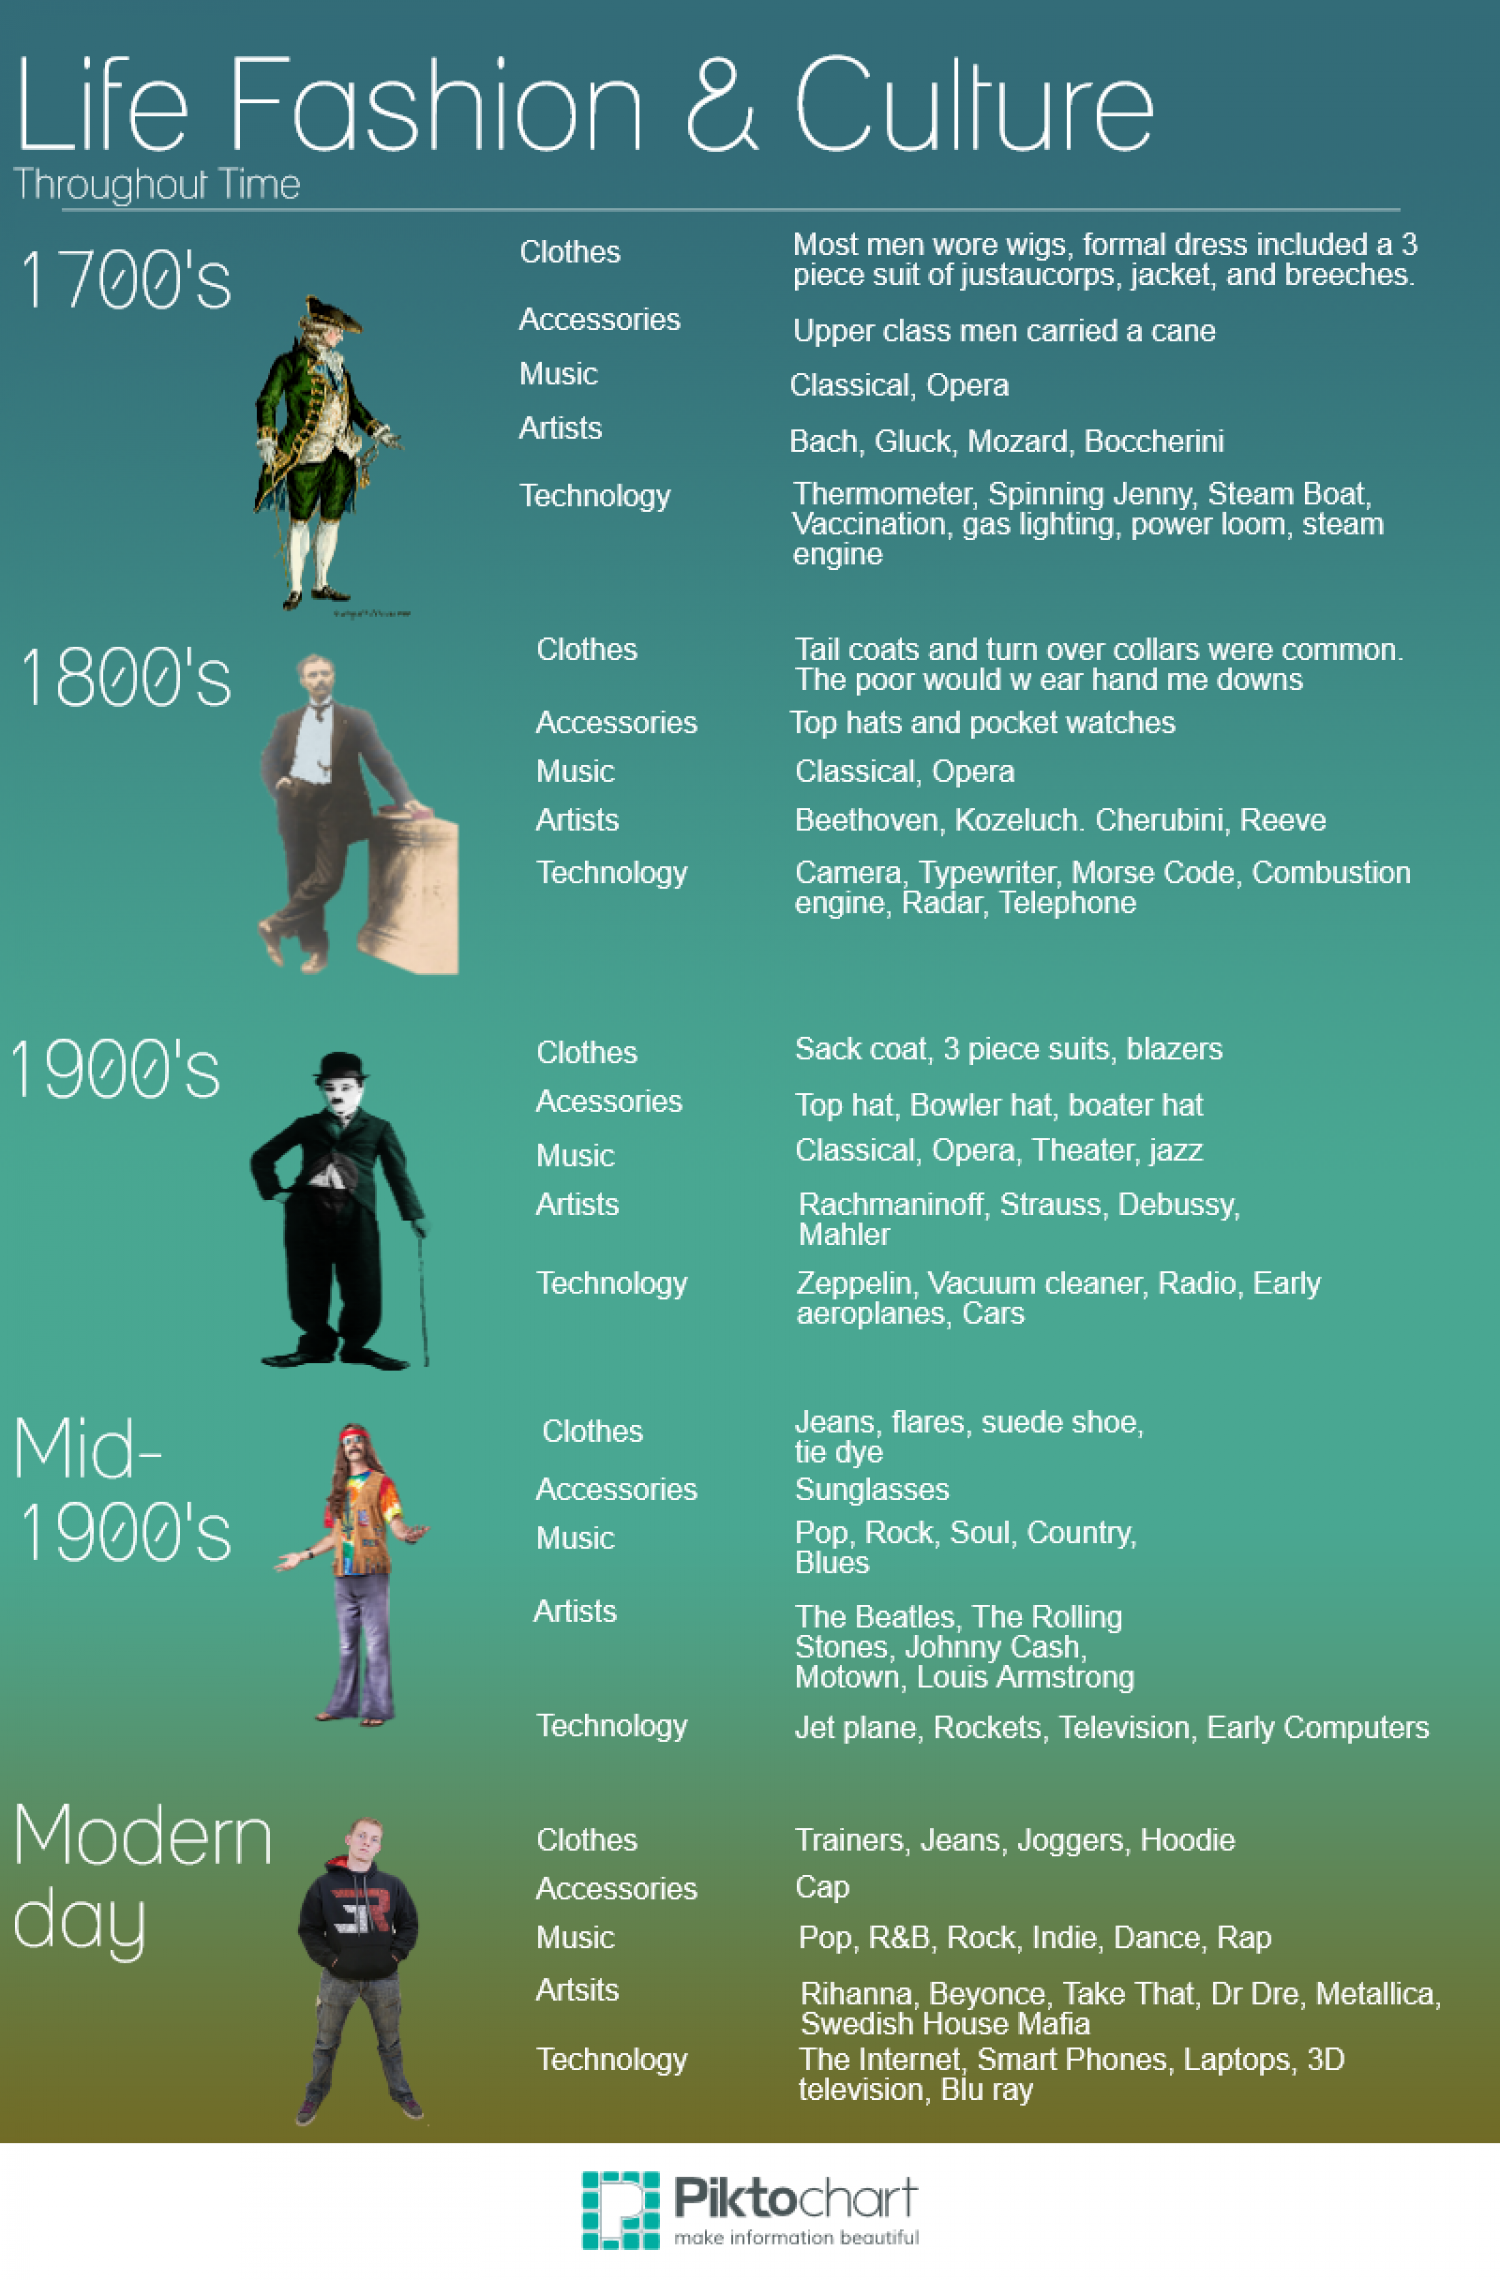 Life Fashion and Culture Infographic